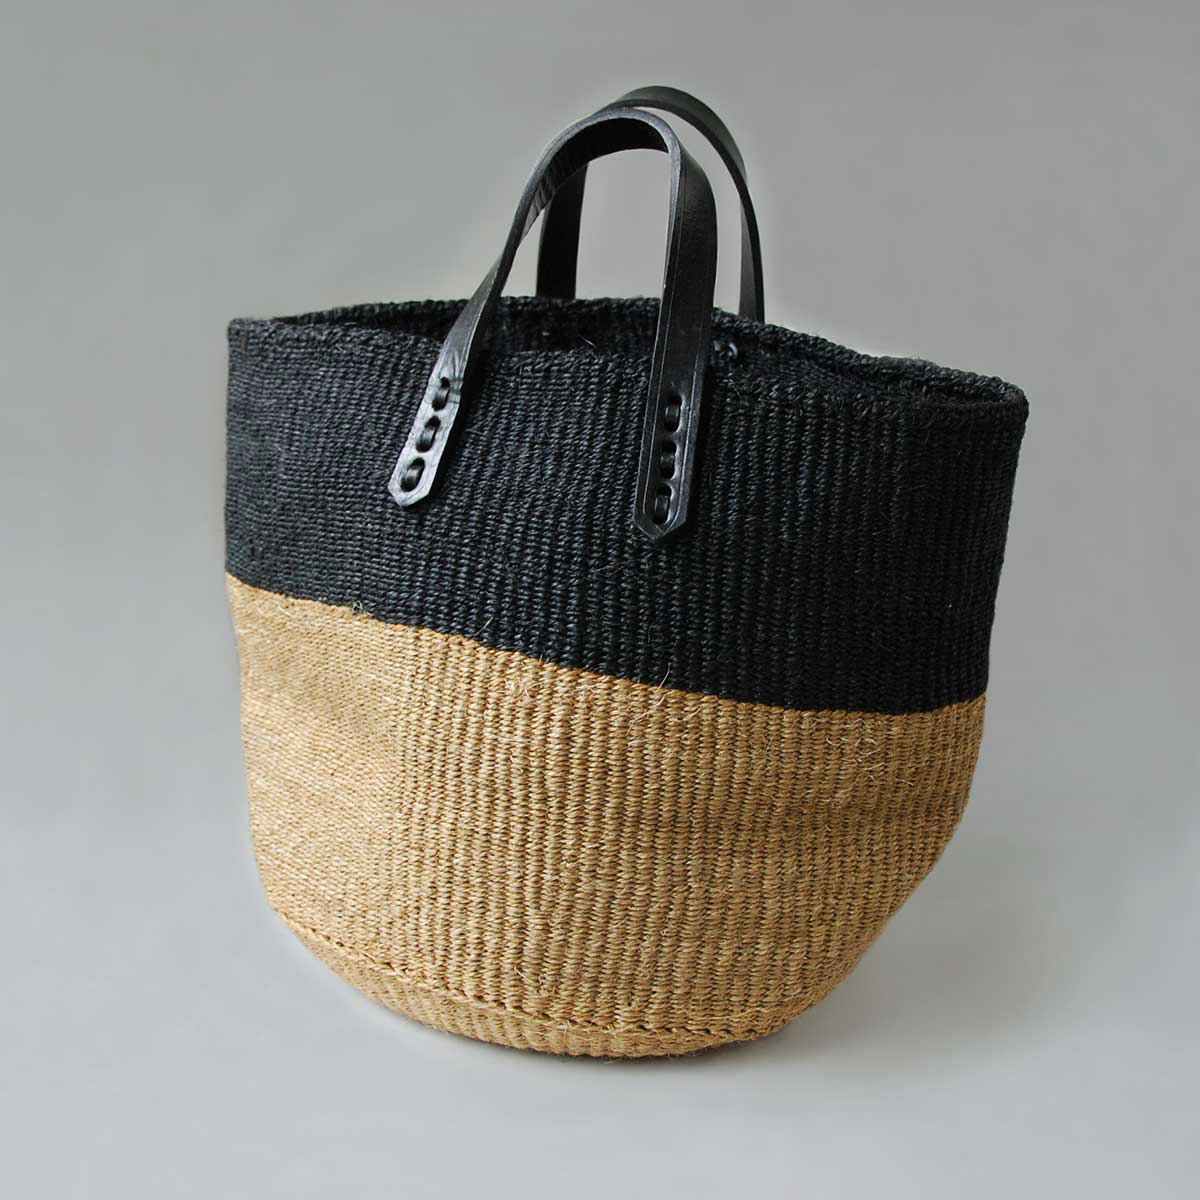 Black-shopping-tote-1200x1200